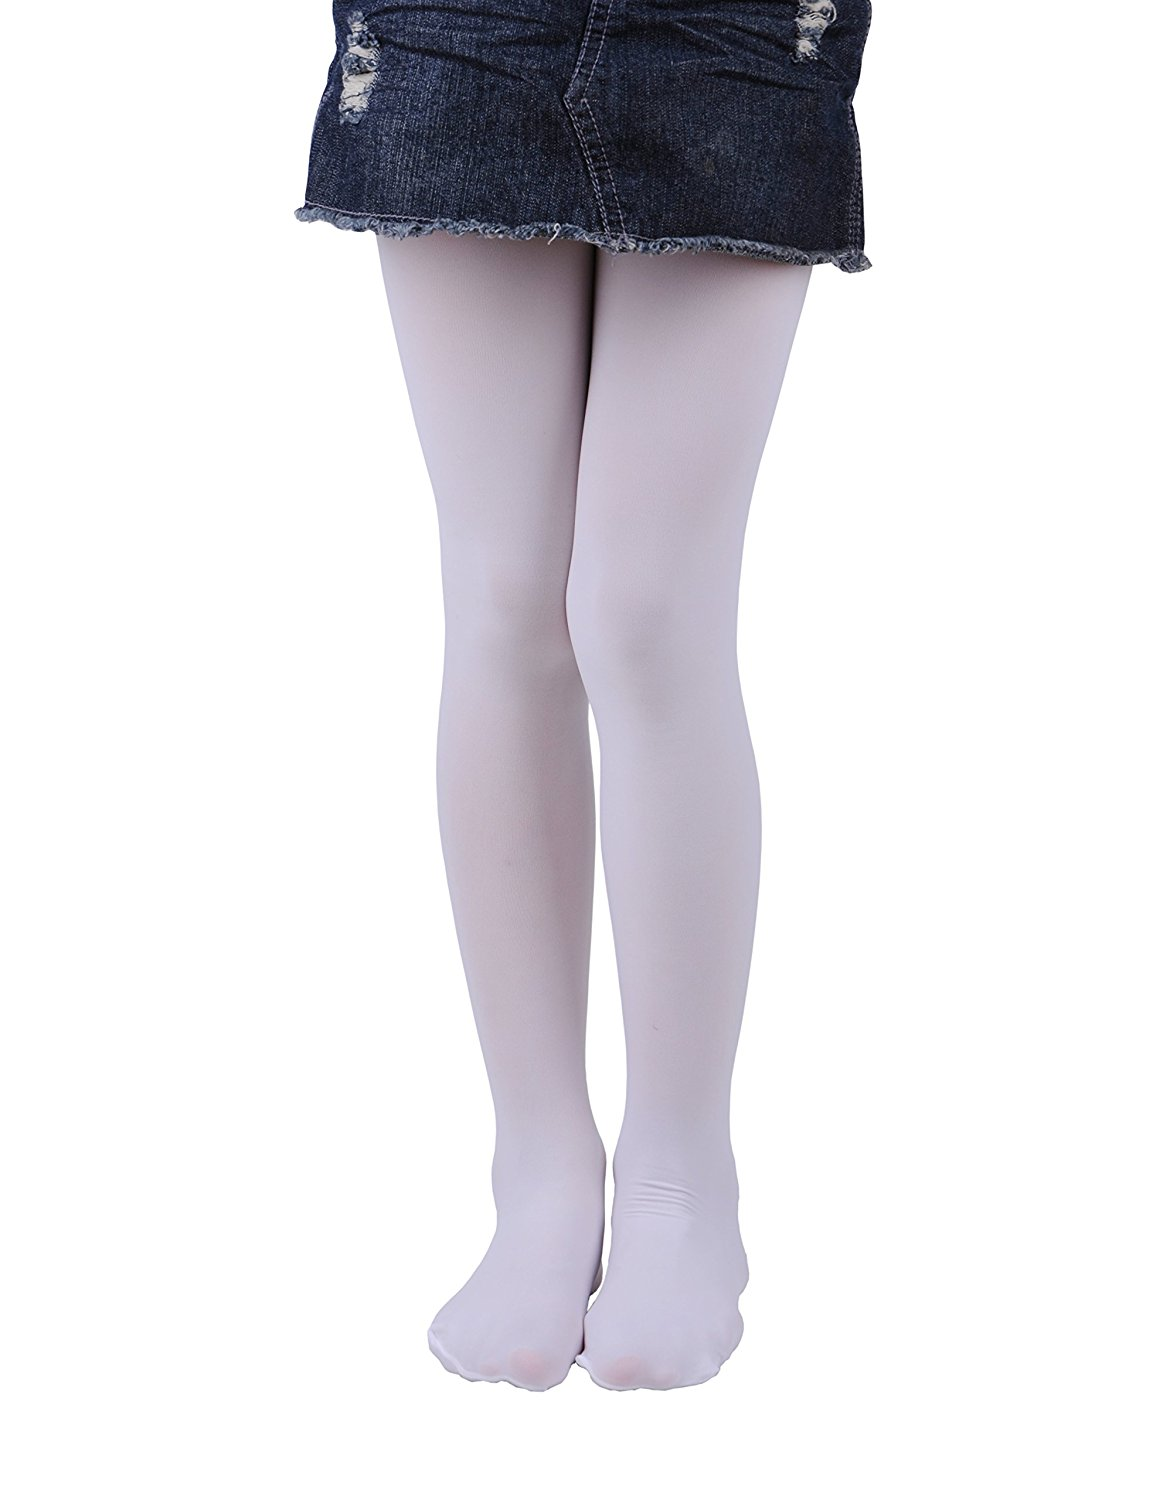 55d6a84b37181 Get Quotations · Girls Tights, Semi Opaque Footed Tights, Microfiber  Comfortable Tights, Dance Tights